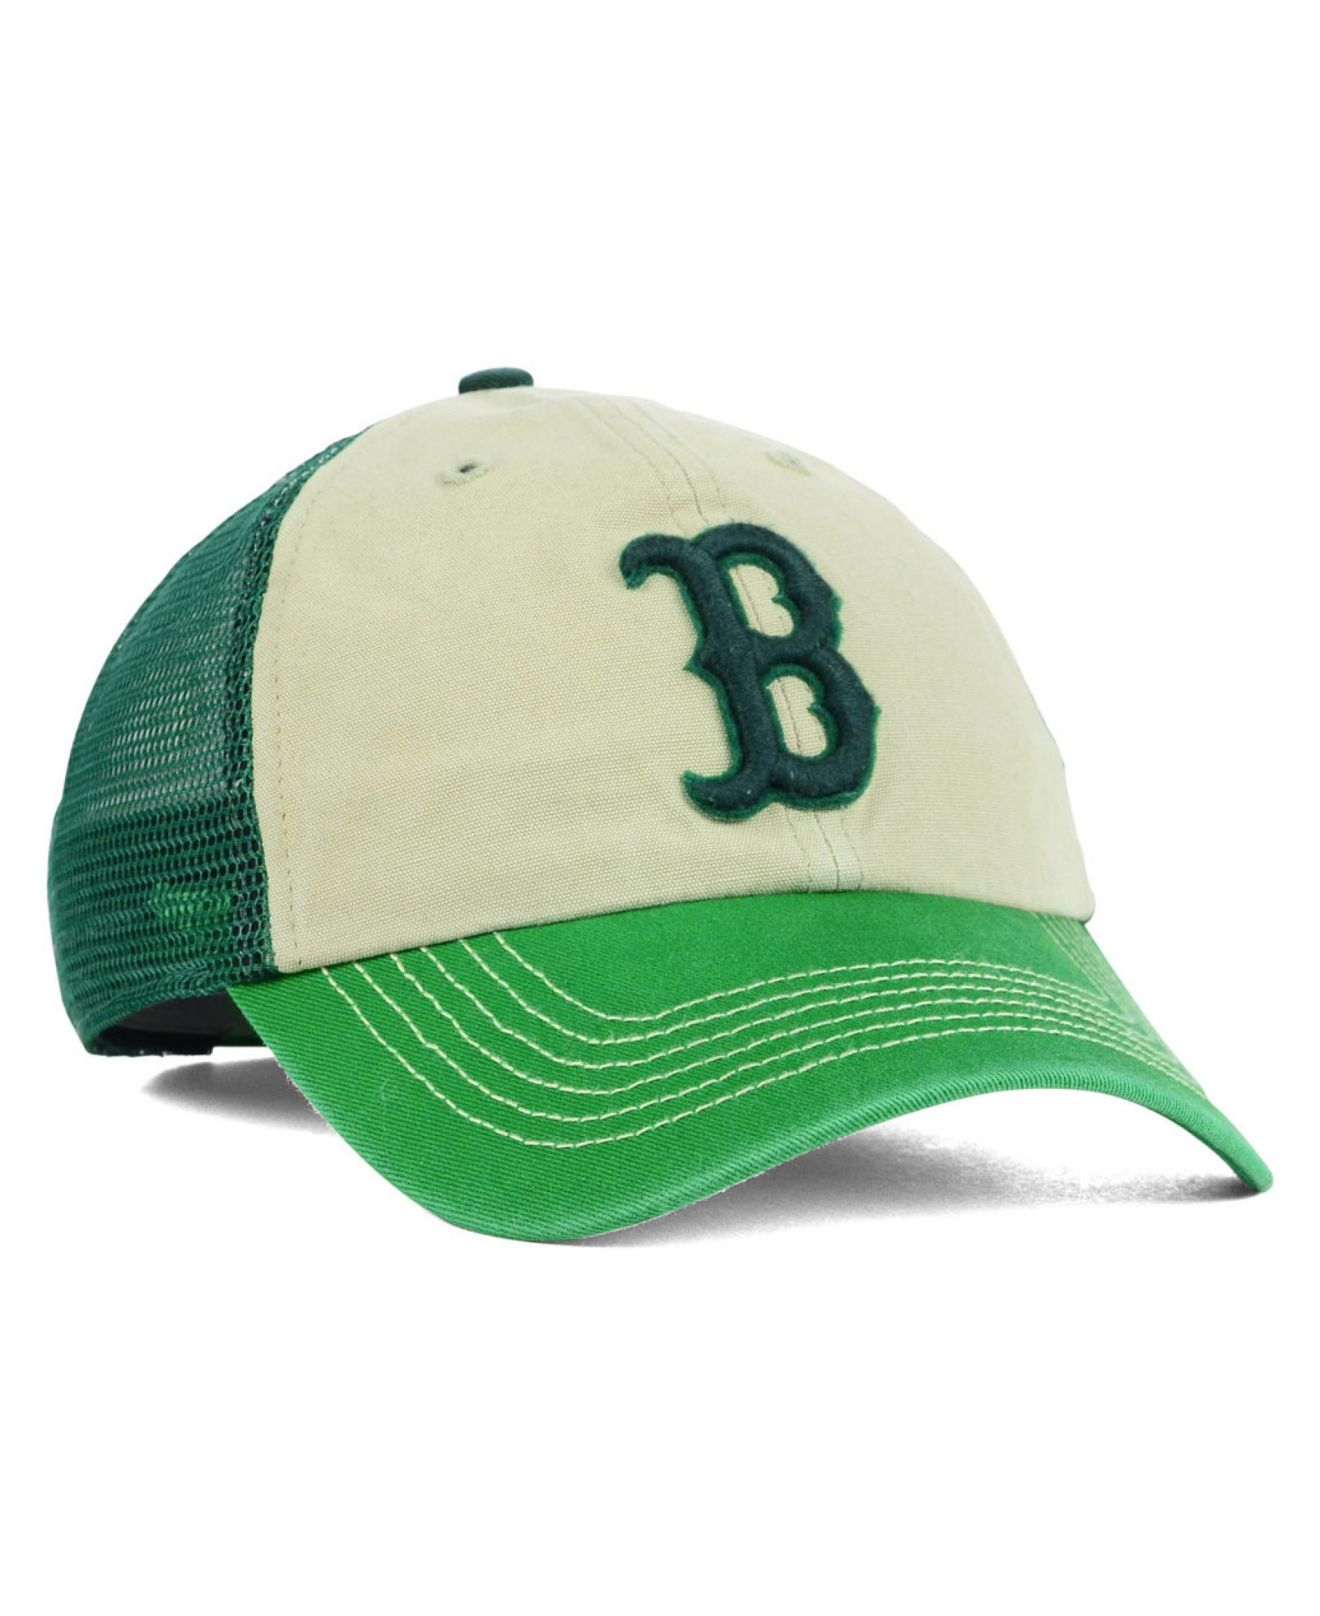 official photos 0db32 eda3d ... where can i buy lyst 47 brand boston red sox mcnally clean up cap in green  new zealand ...